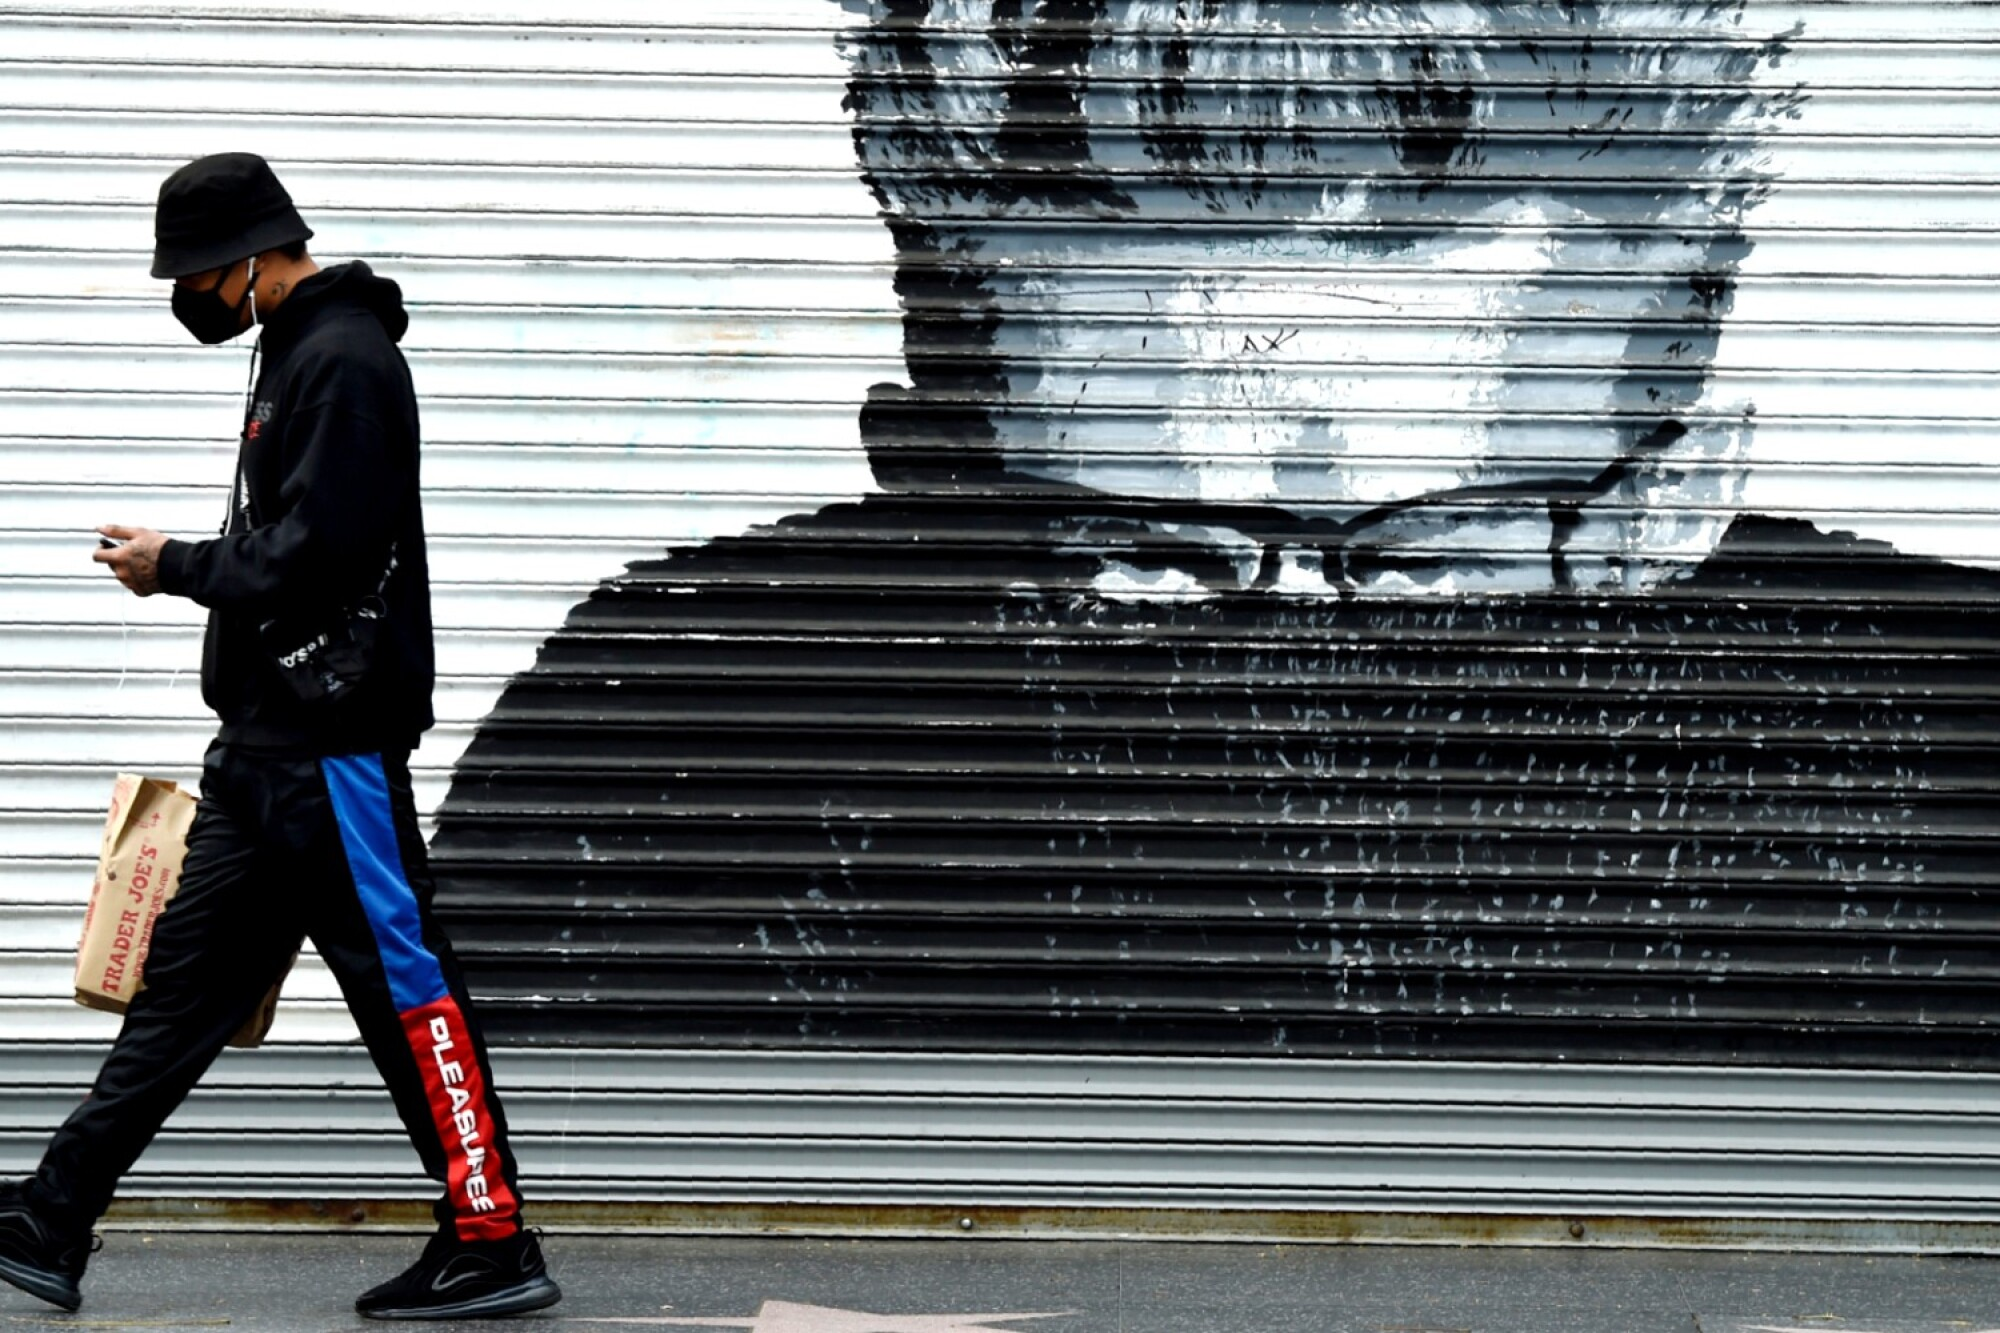 A shopper walks past a storefront mural depicting actor James Dean in Los Angeles on Tuesday.